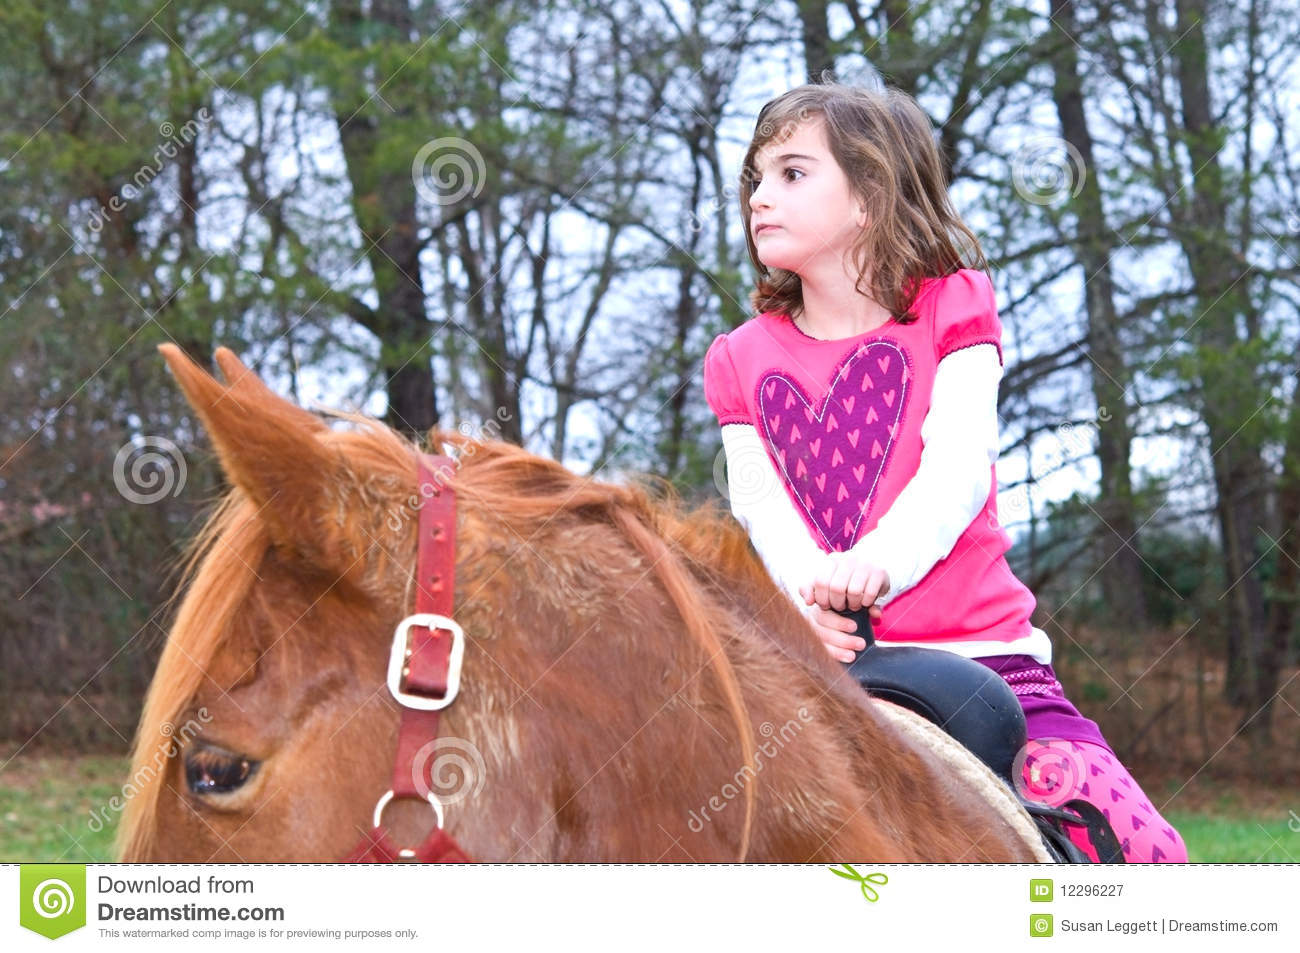 Cute Girl on a Horse